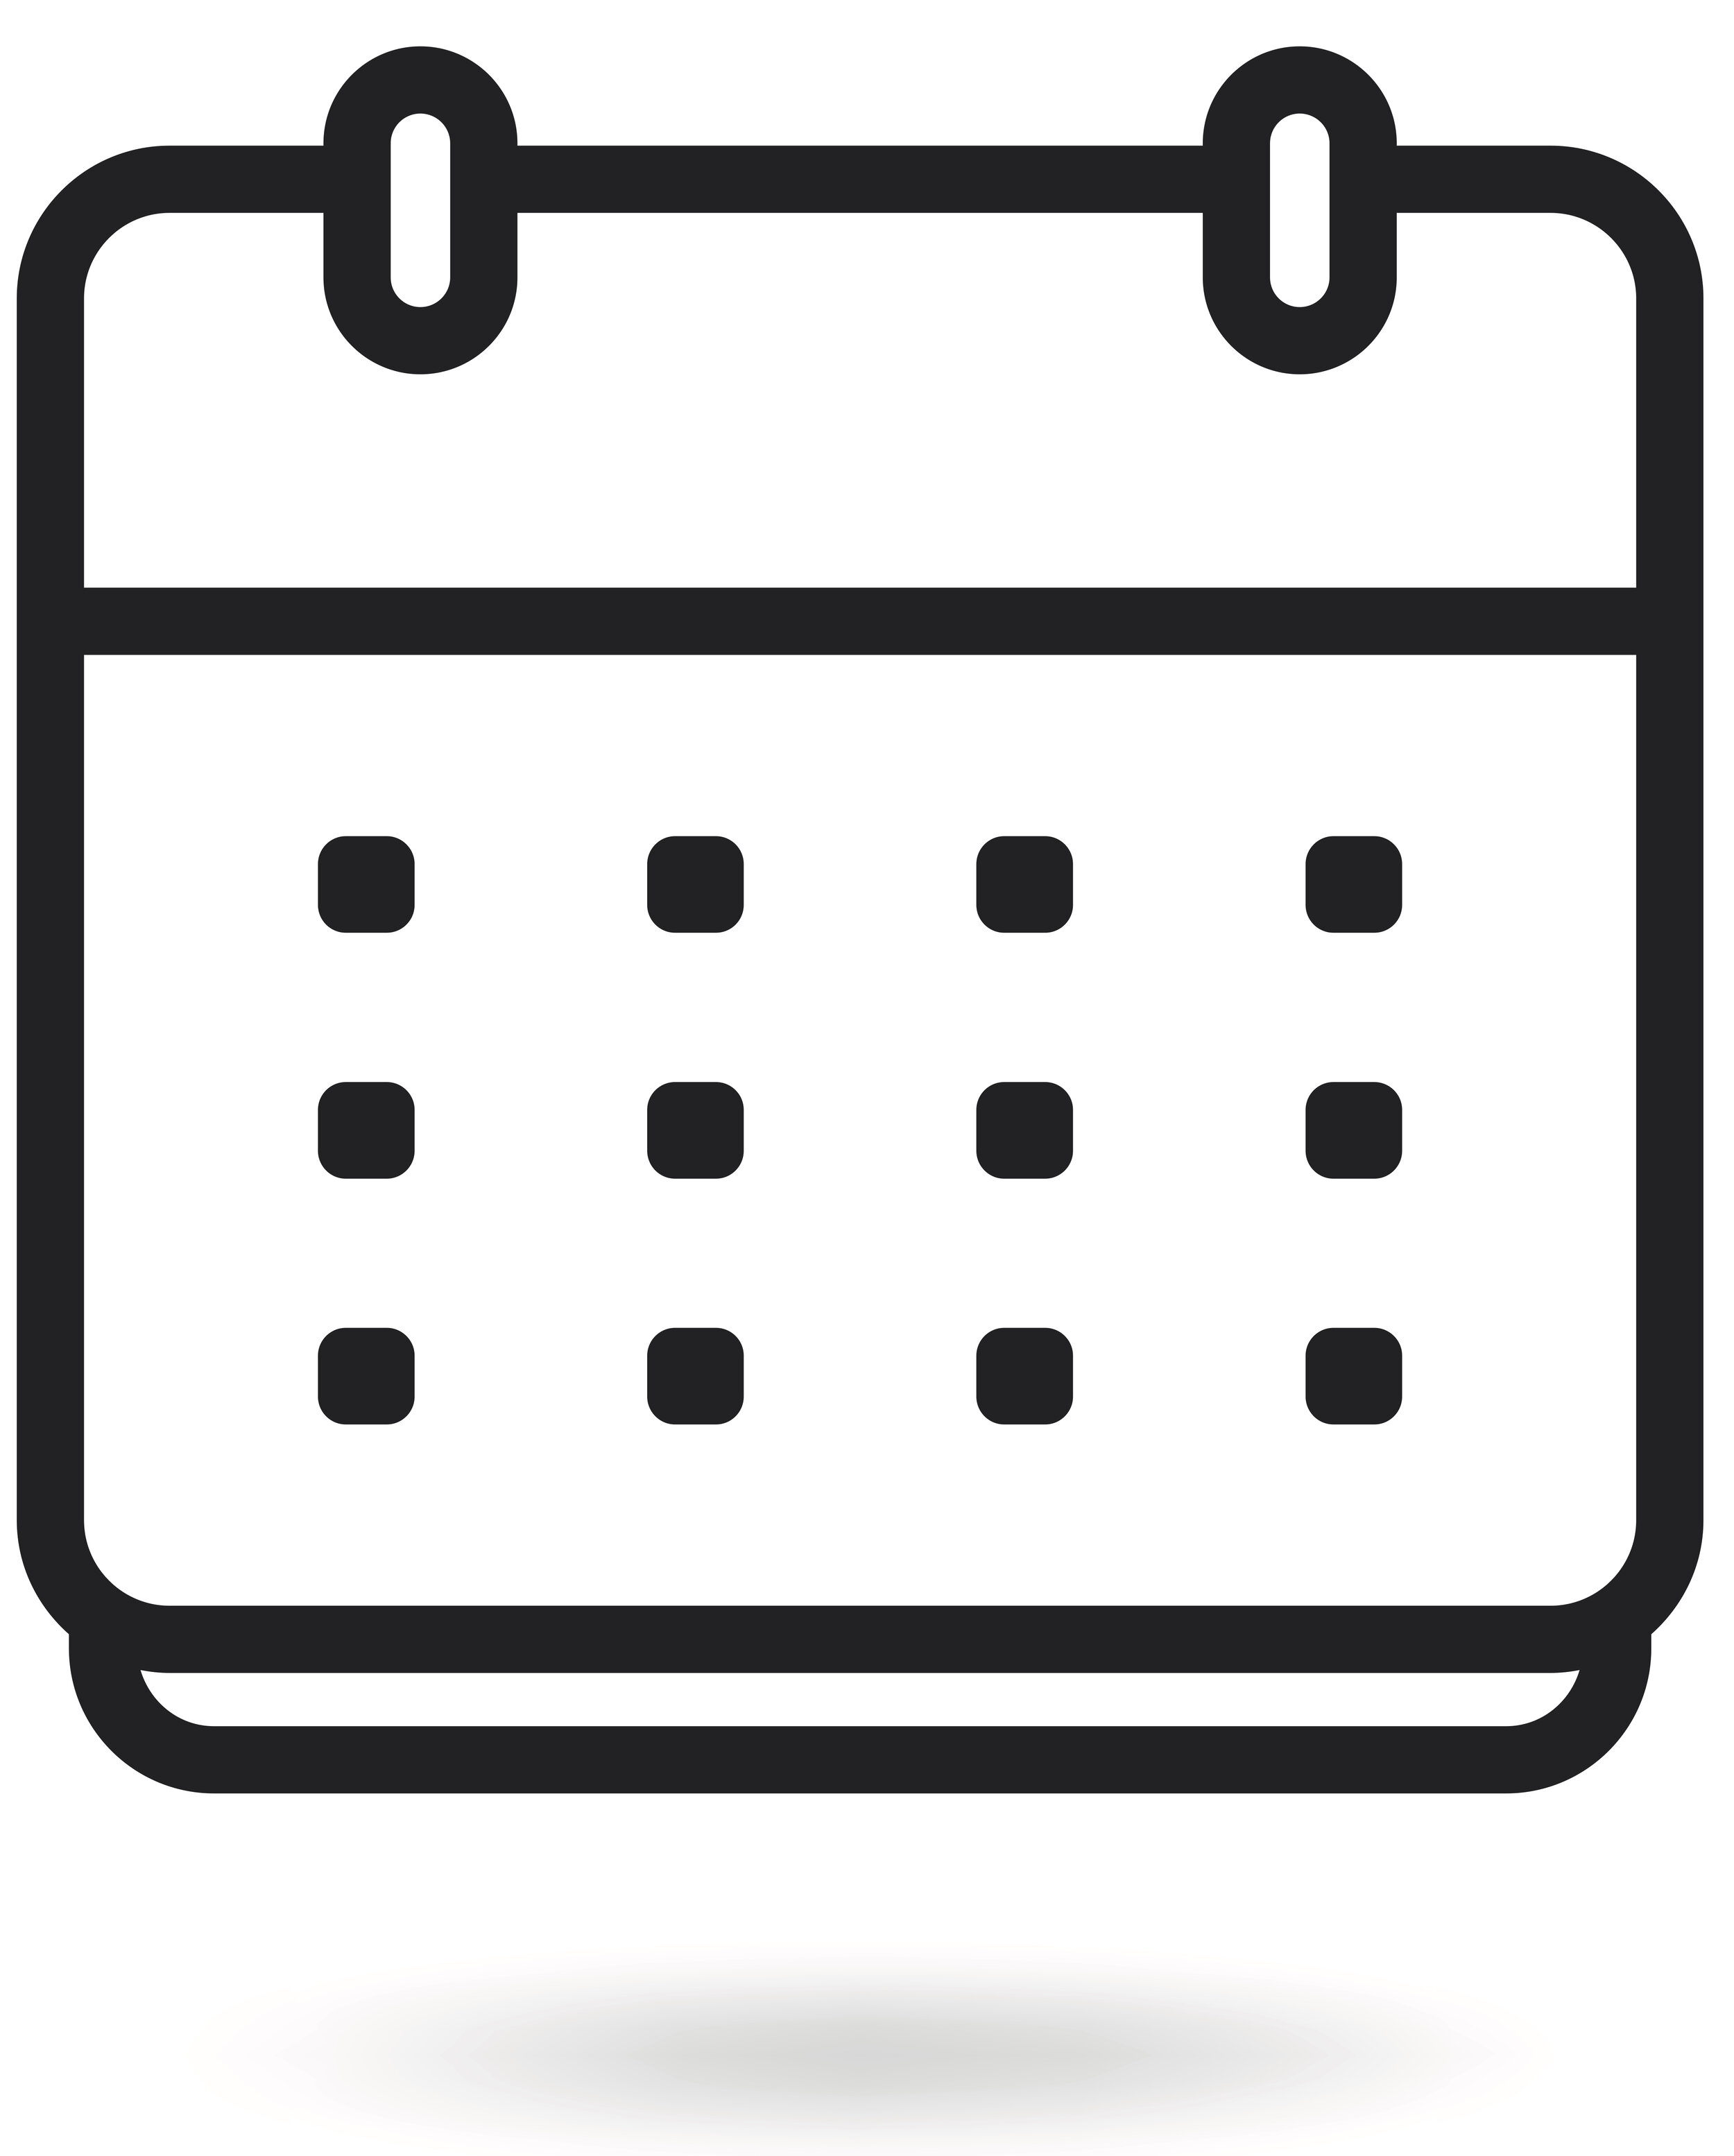 Interested in competing? Check out the event calendar for upcoming dates and locations  here !